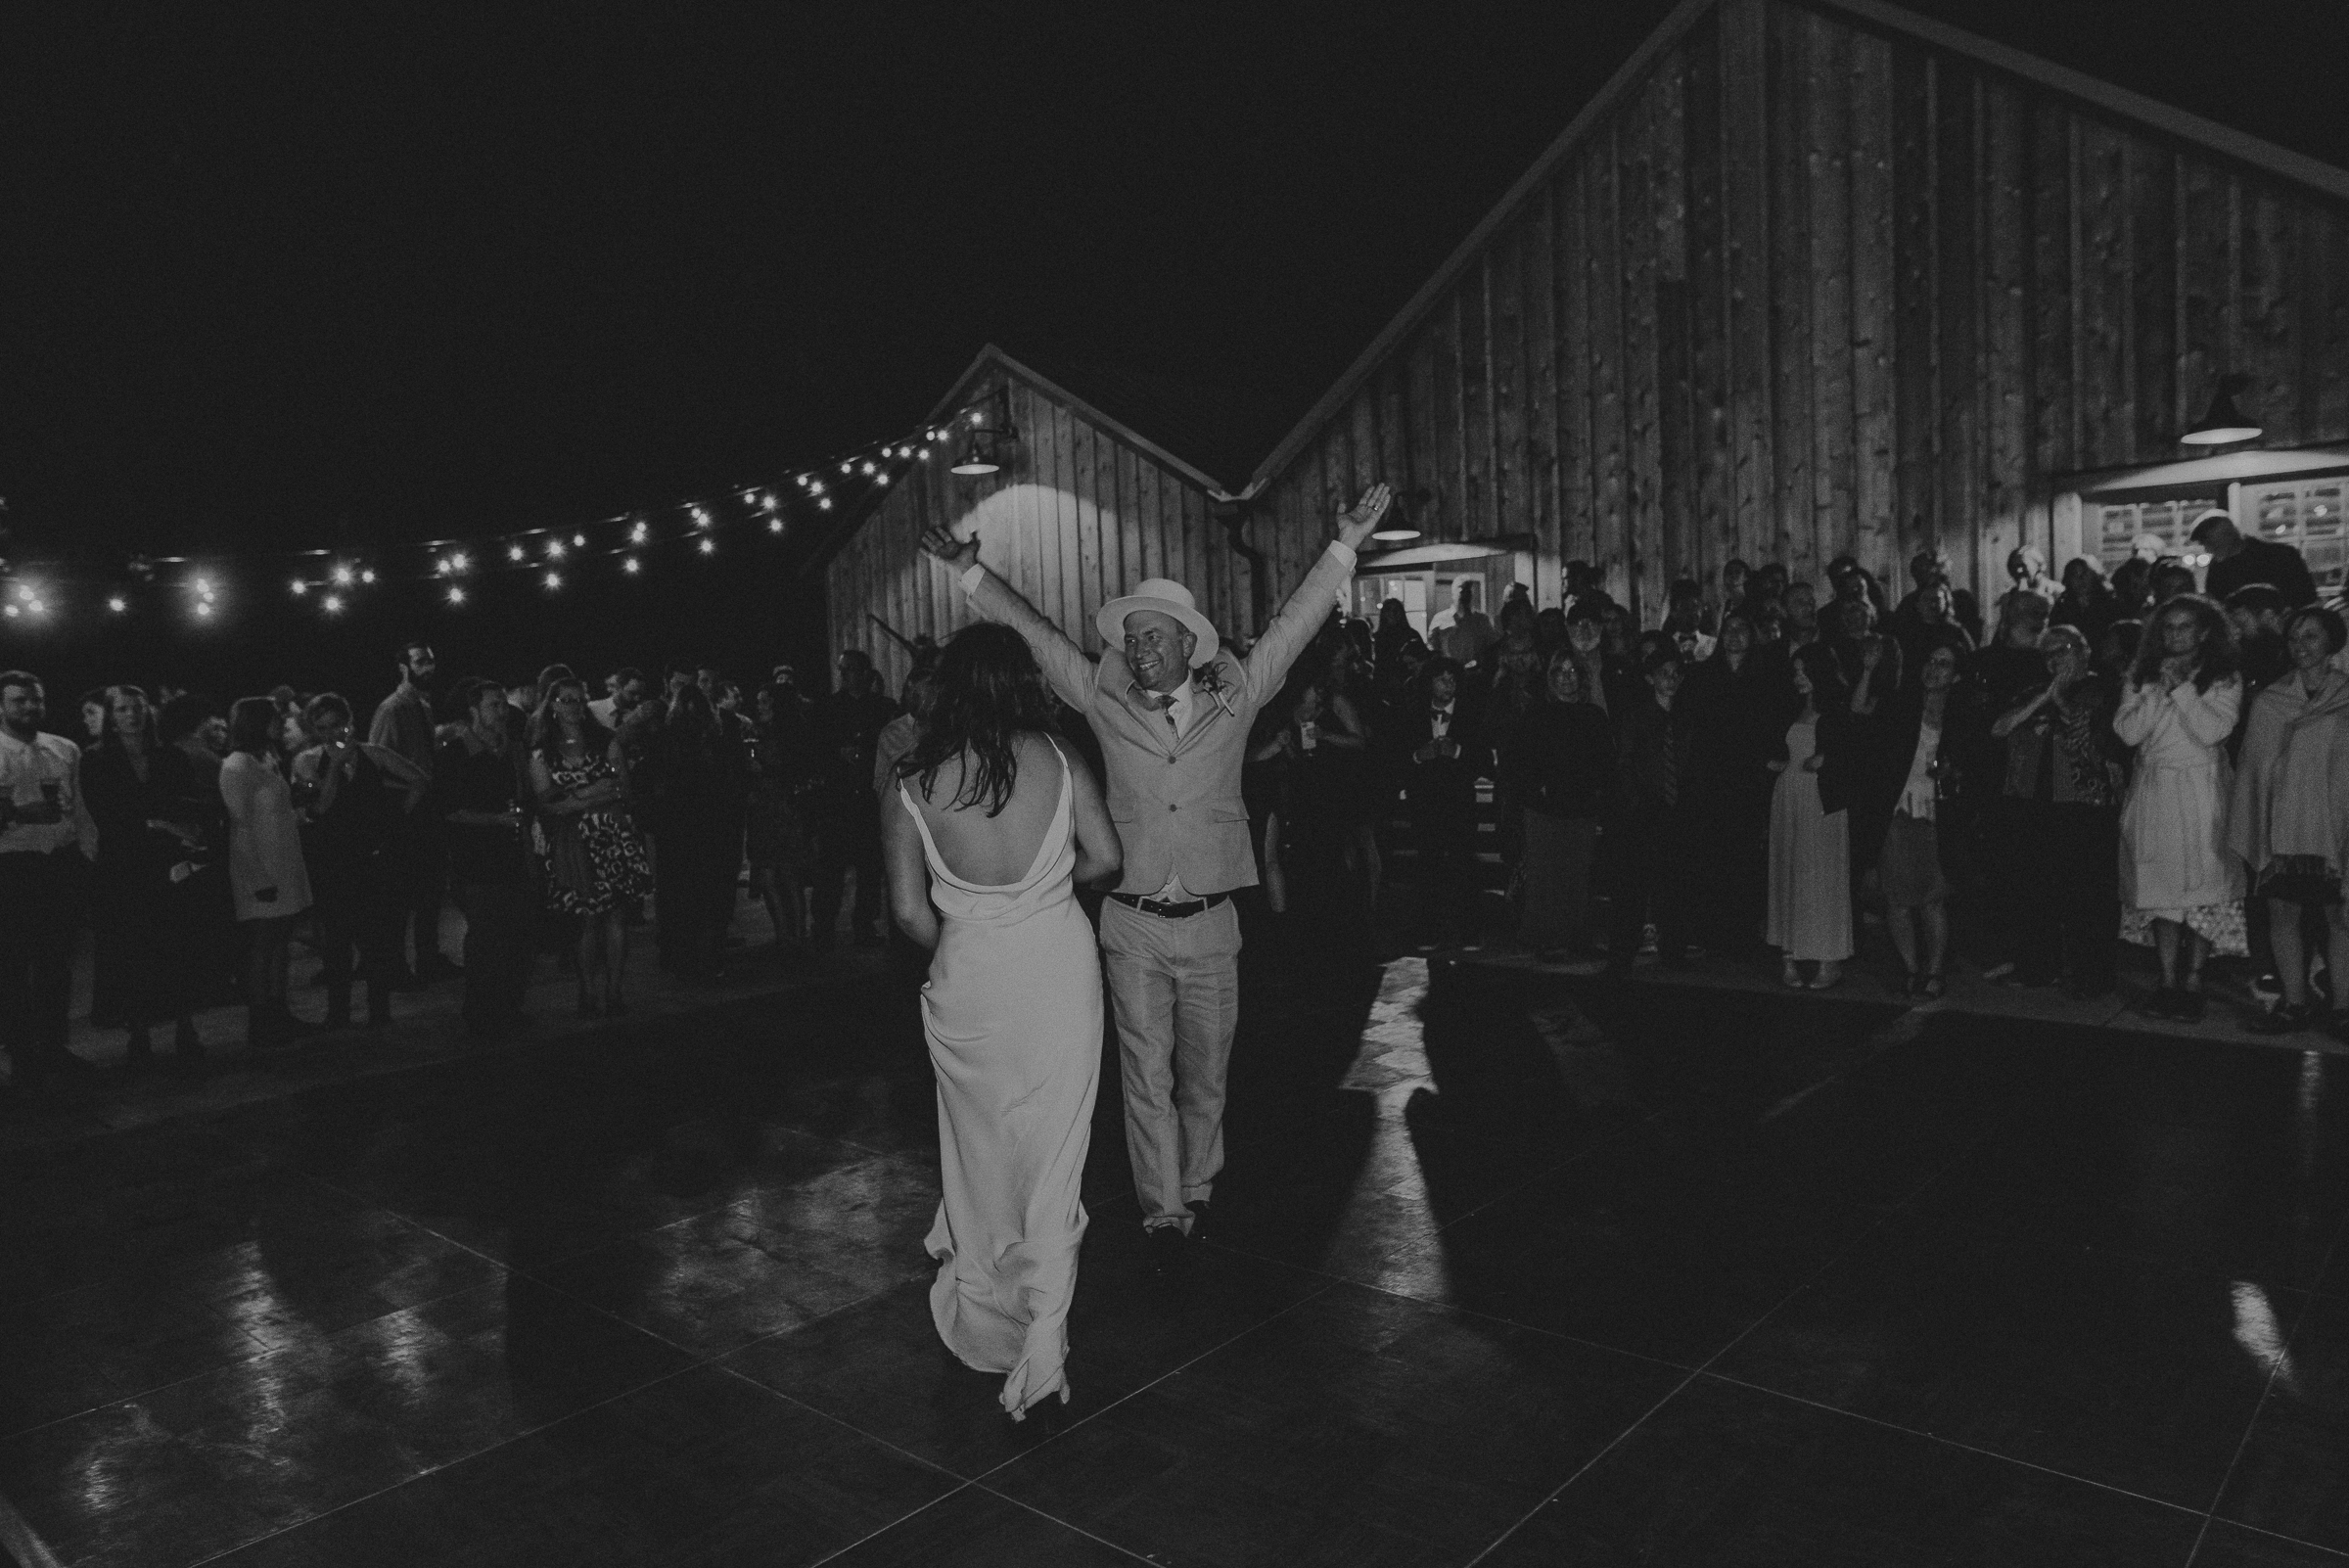 Isaiah + Taylor Photography - Camp Colton Wedding, Los Angeles Wedding Photographer-141.jpg